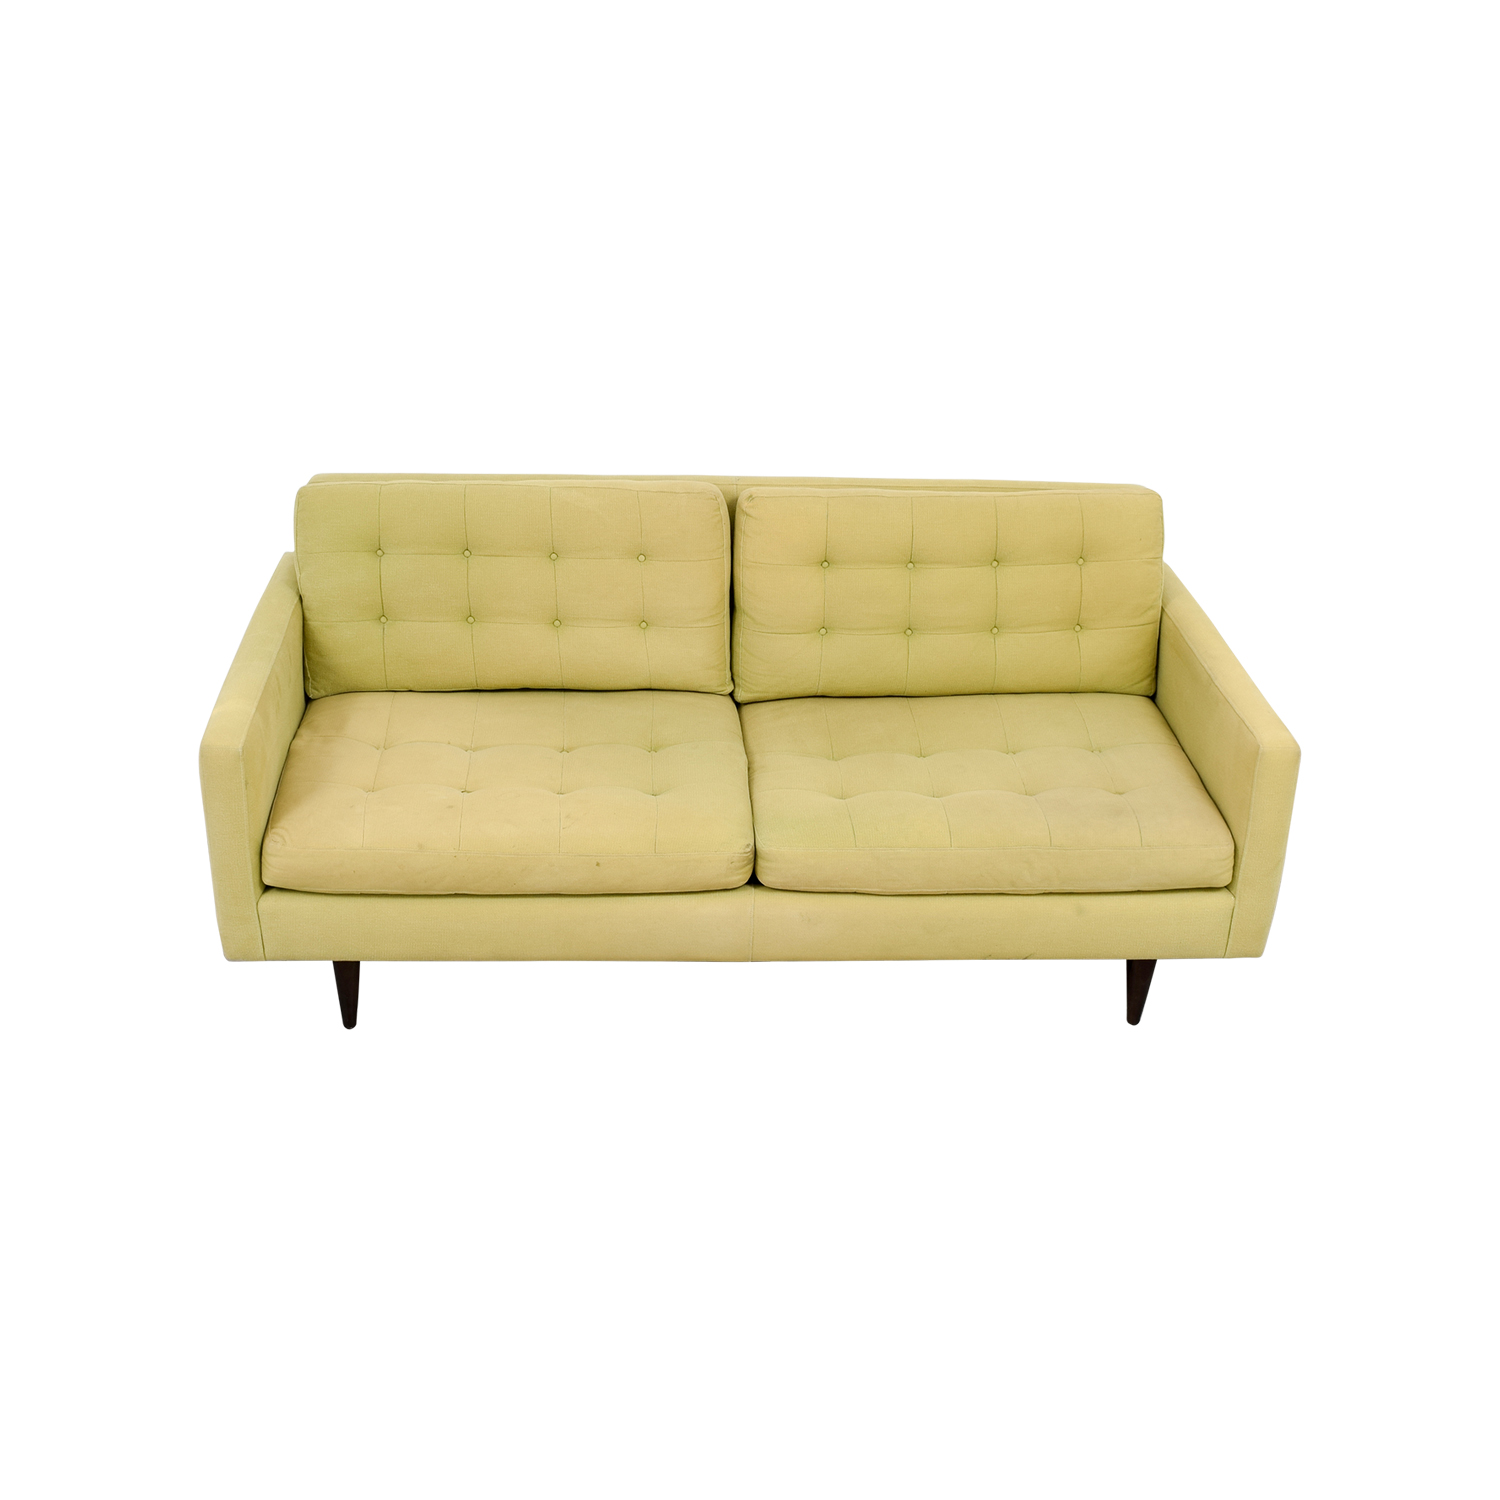 buy Crate & Barrel Petrie Pale Green Tufted Sofa Crate & Barrel Sofas